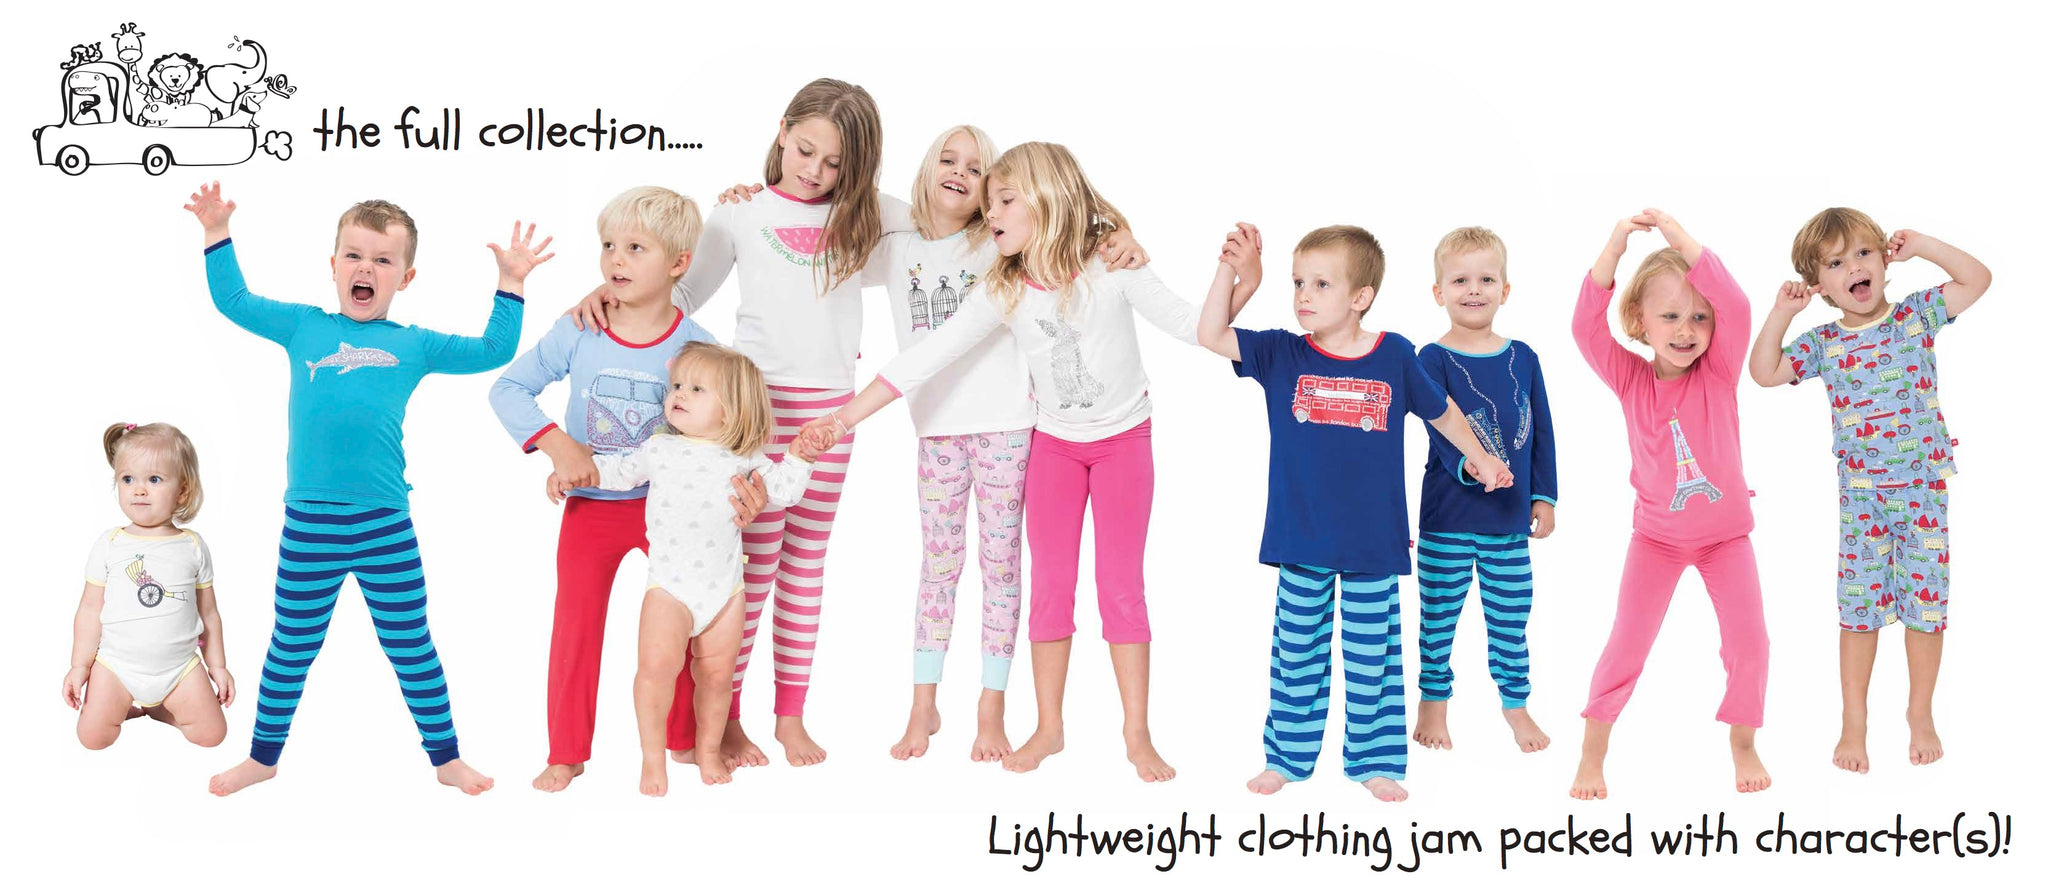 Snug-a-licious bamboo loungewear for kids